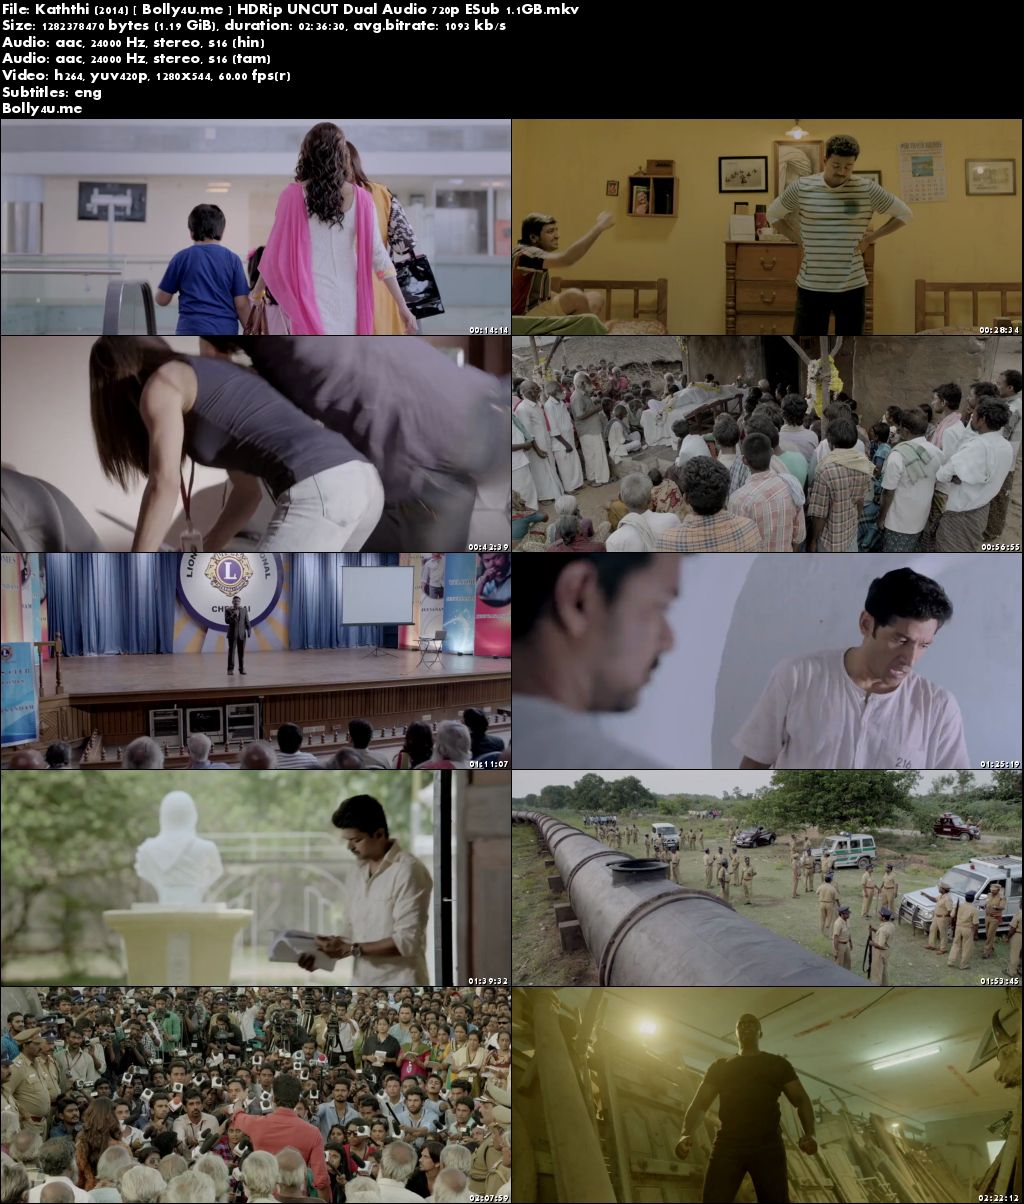 Kaththi 2014 HDRip UNCUT 500Mb Hindi Dual Audio 480p ESub Download